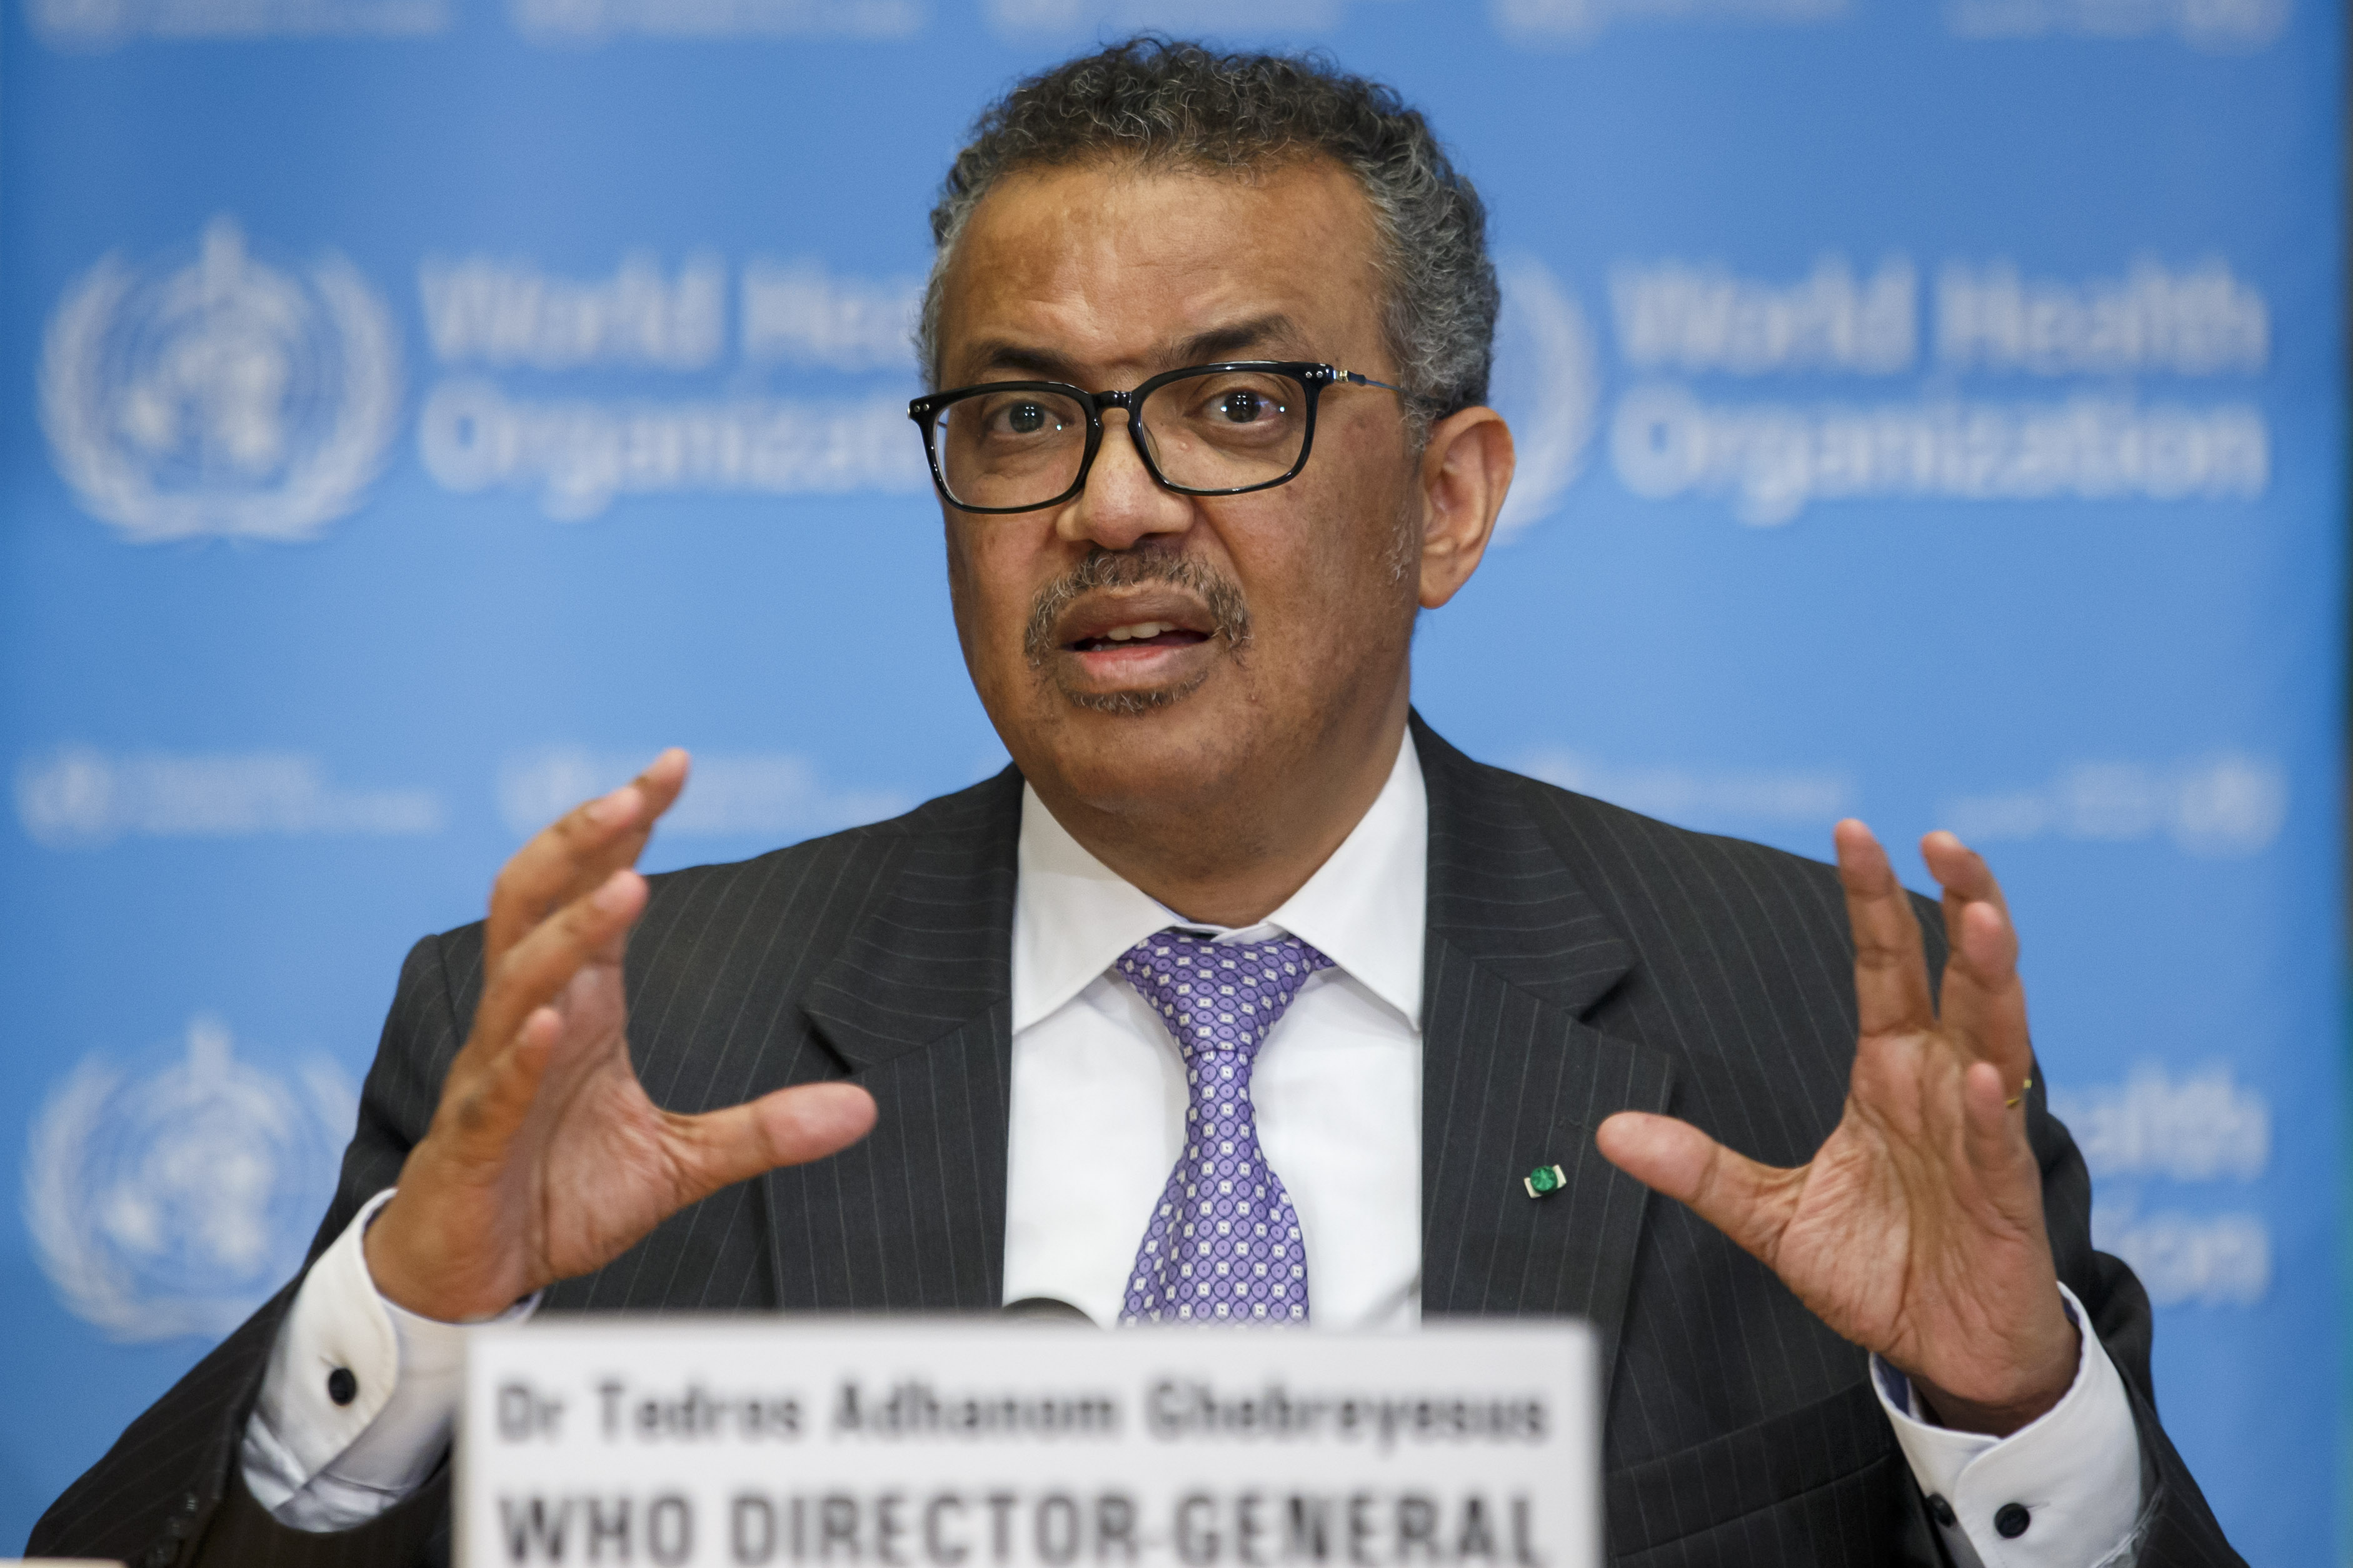 Tedros Adhanom Ghebreyesus, director general of the World Health Organization, informs the media about updates regarding the novel coronavirus during a new press conference at WHO headquarters in Geneva, Switzerland, March 9, 2020. World Health Organization (WHO) press conference on coronavirus,m COVID-19, Geneva, Switzerland - 09 Mar 2020